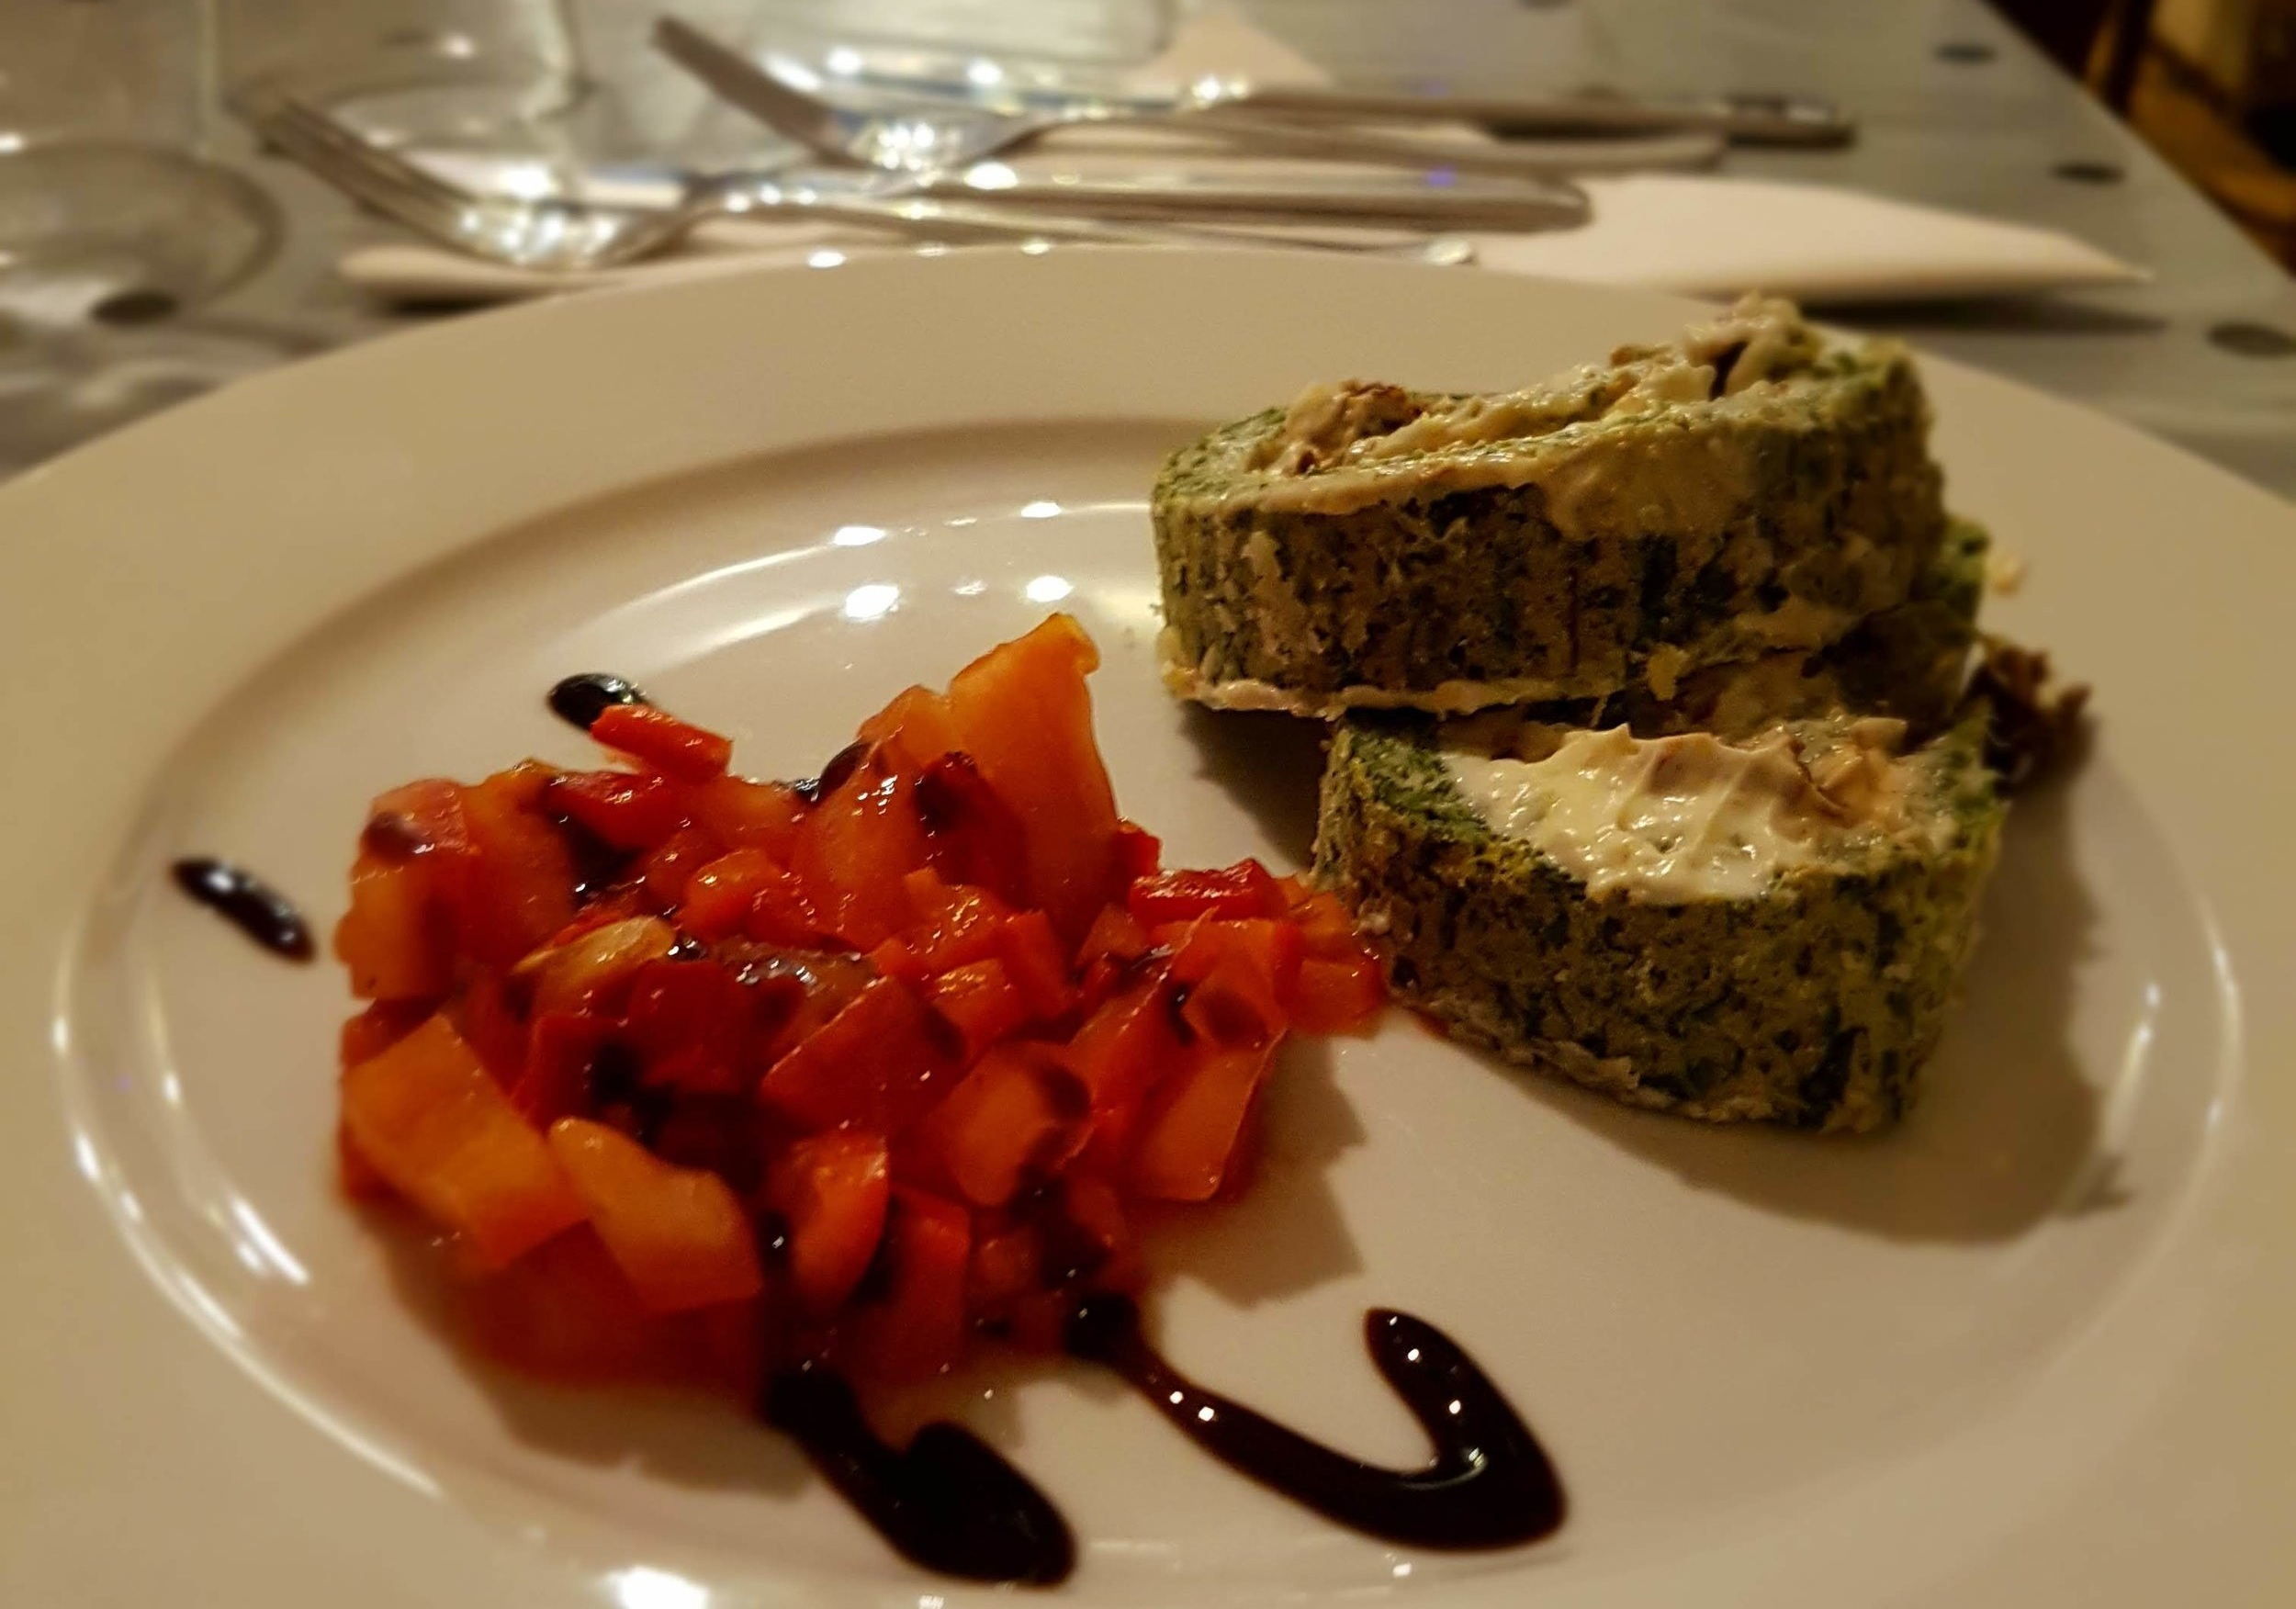 Spinach and sun dried tomato roulade - served with a salsa of tomato and roasted red pepper